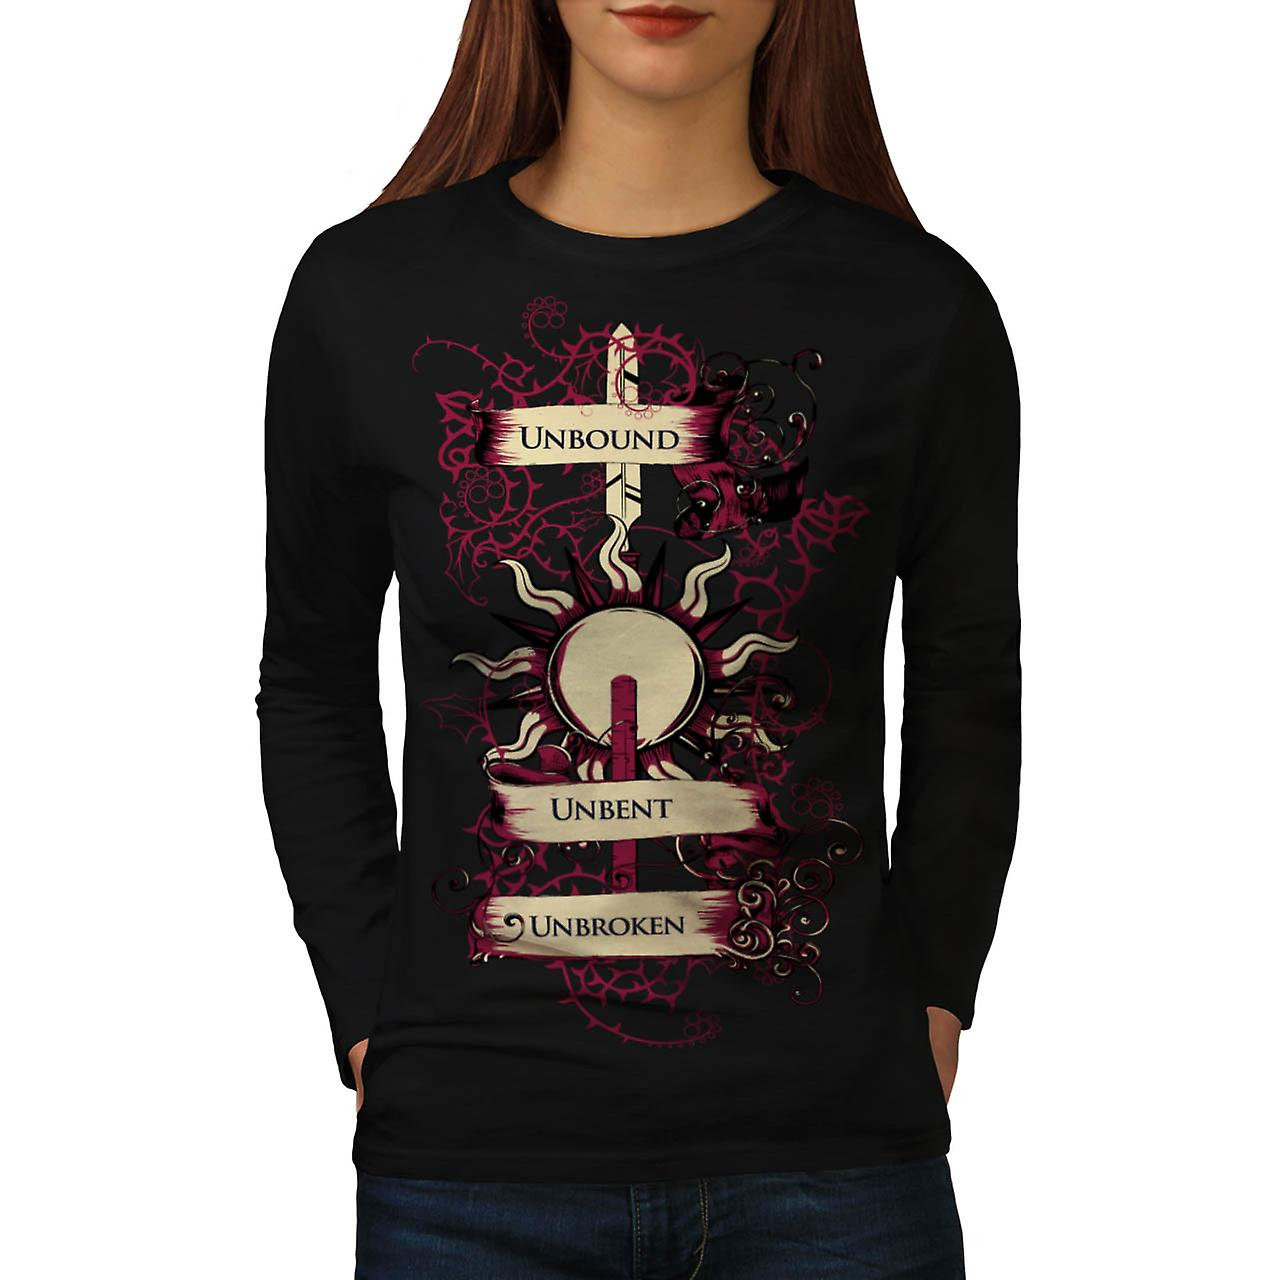 Unbound Unbroken Sun Unbent Women Black Long Sleeve T-shirt | Wellcoda